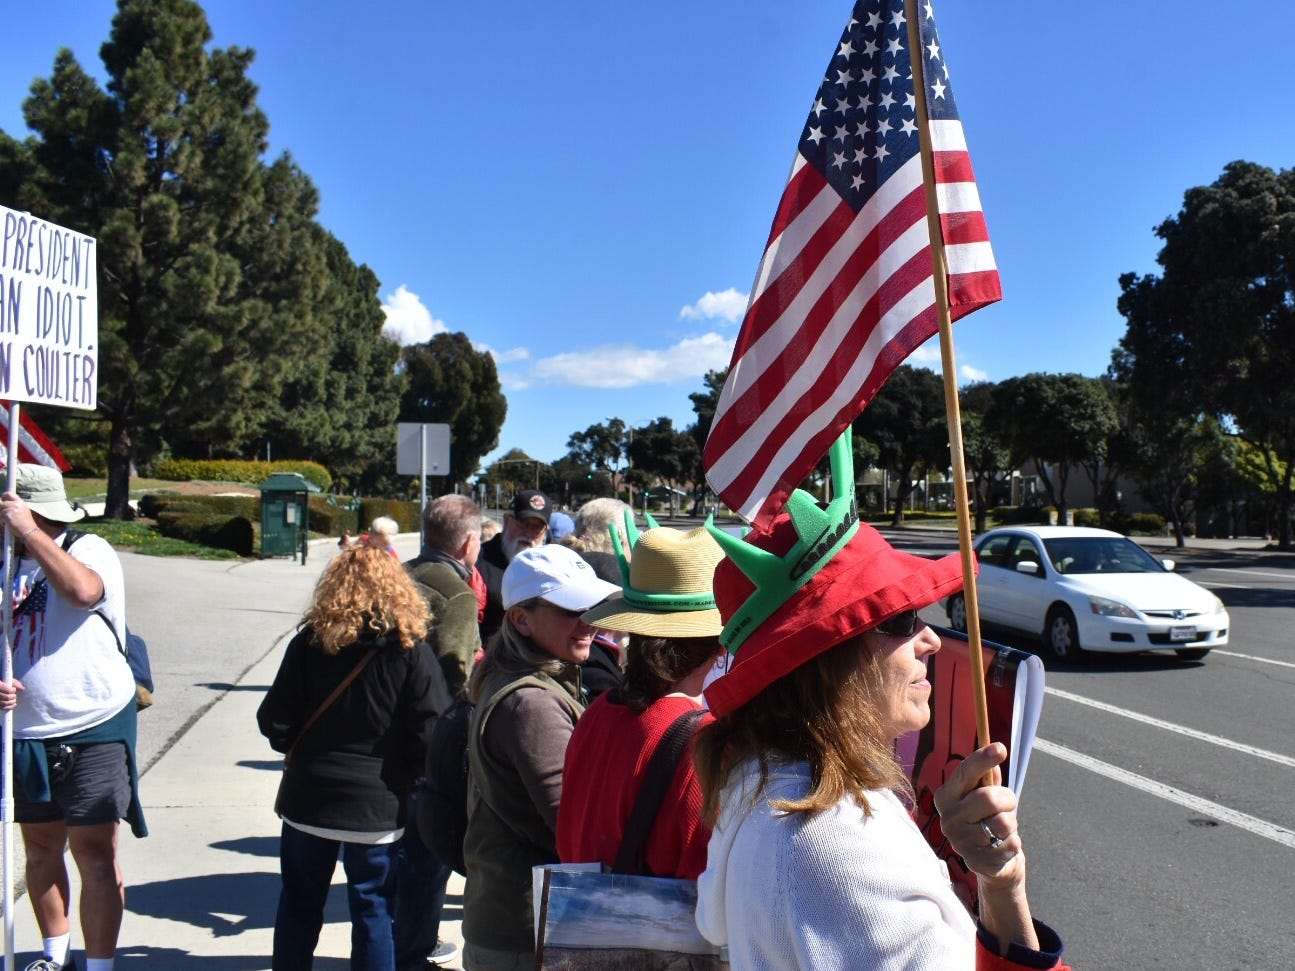 Sharon Ruiz, of Ventura, wore a Statue of Liberty crown at a Presidents Day rally Monday.